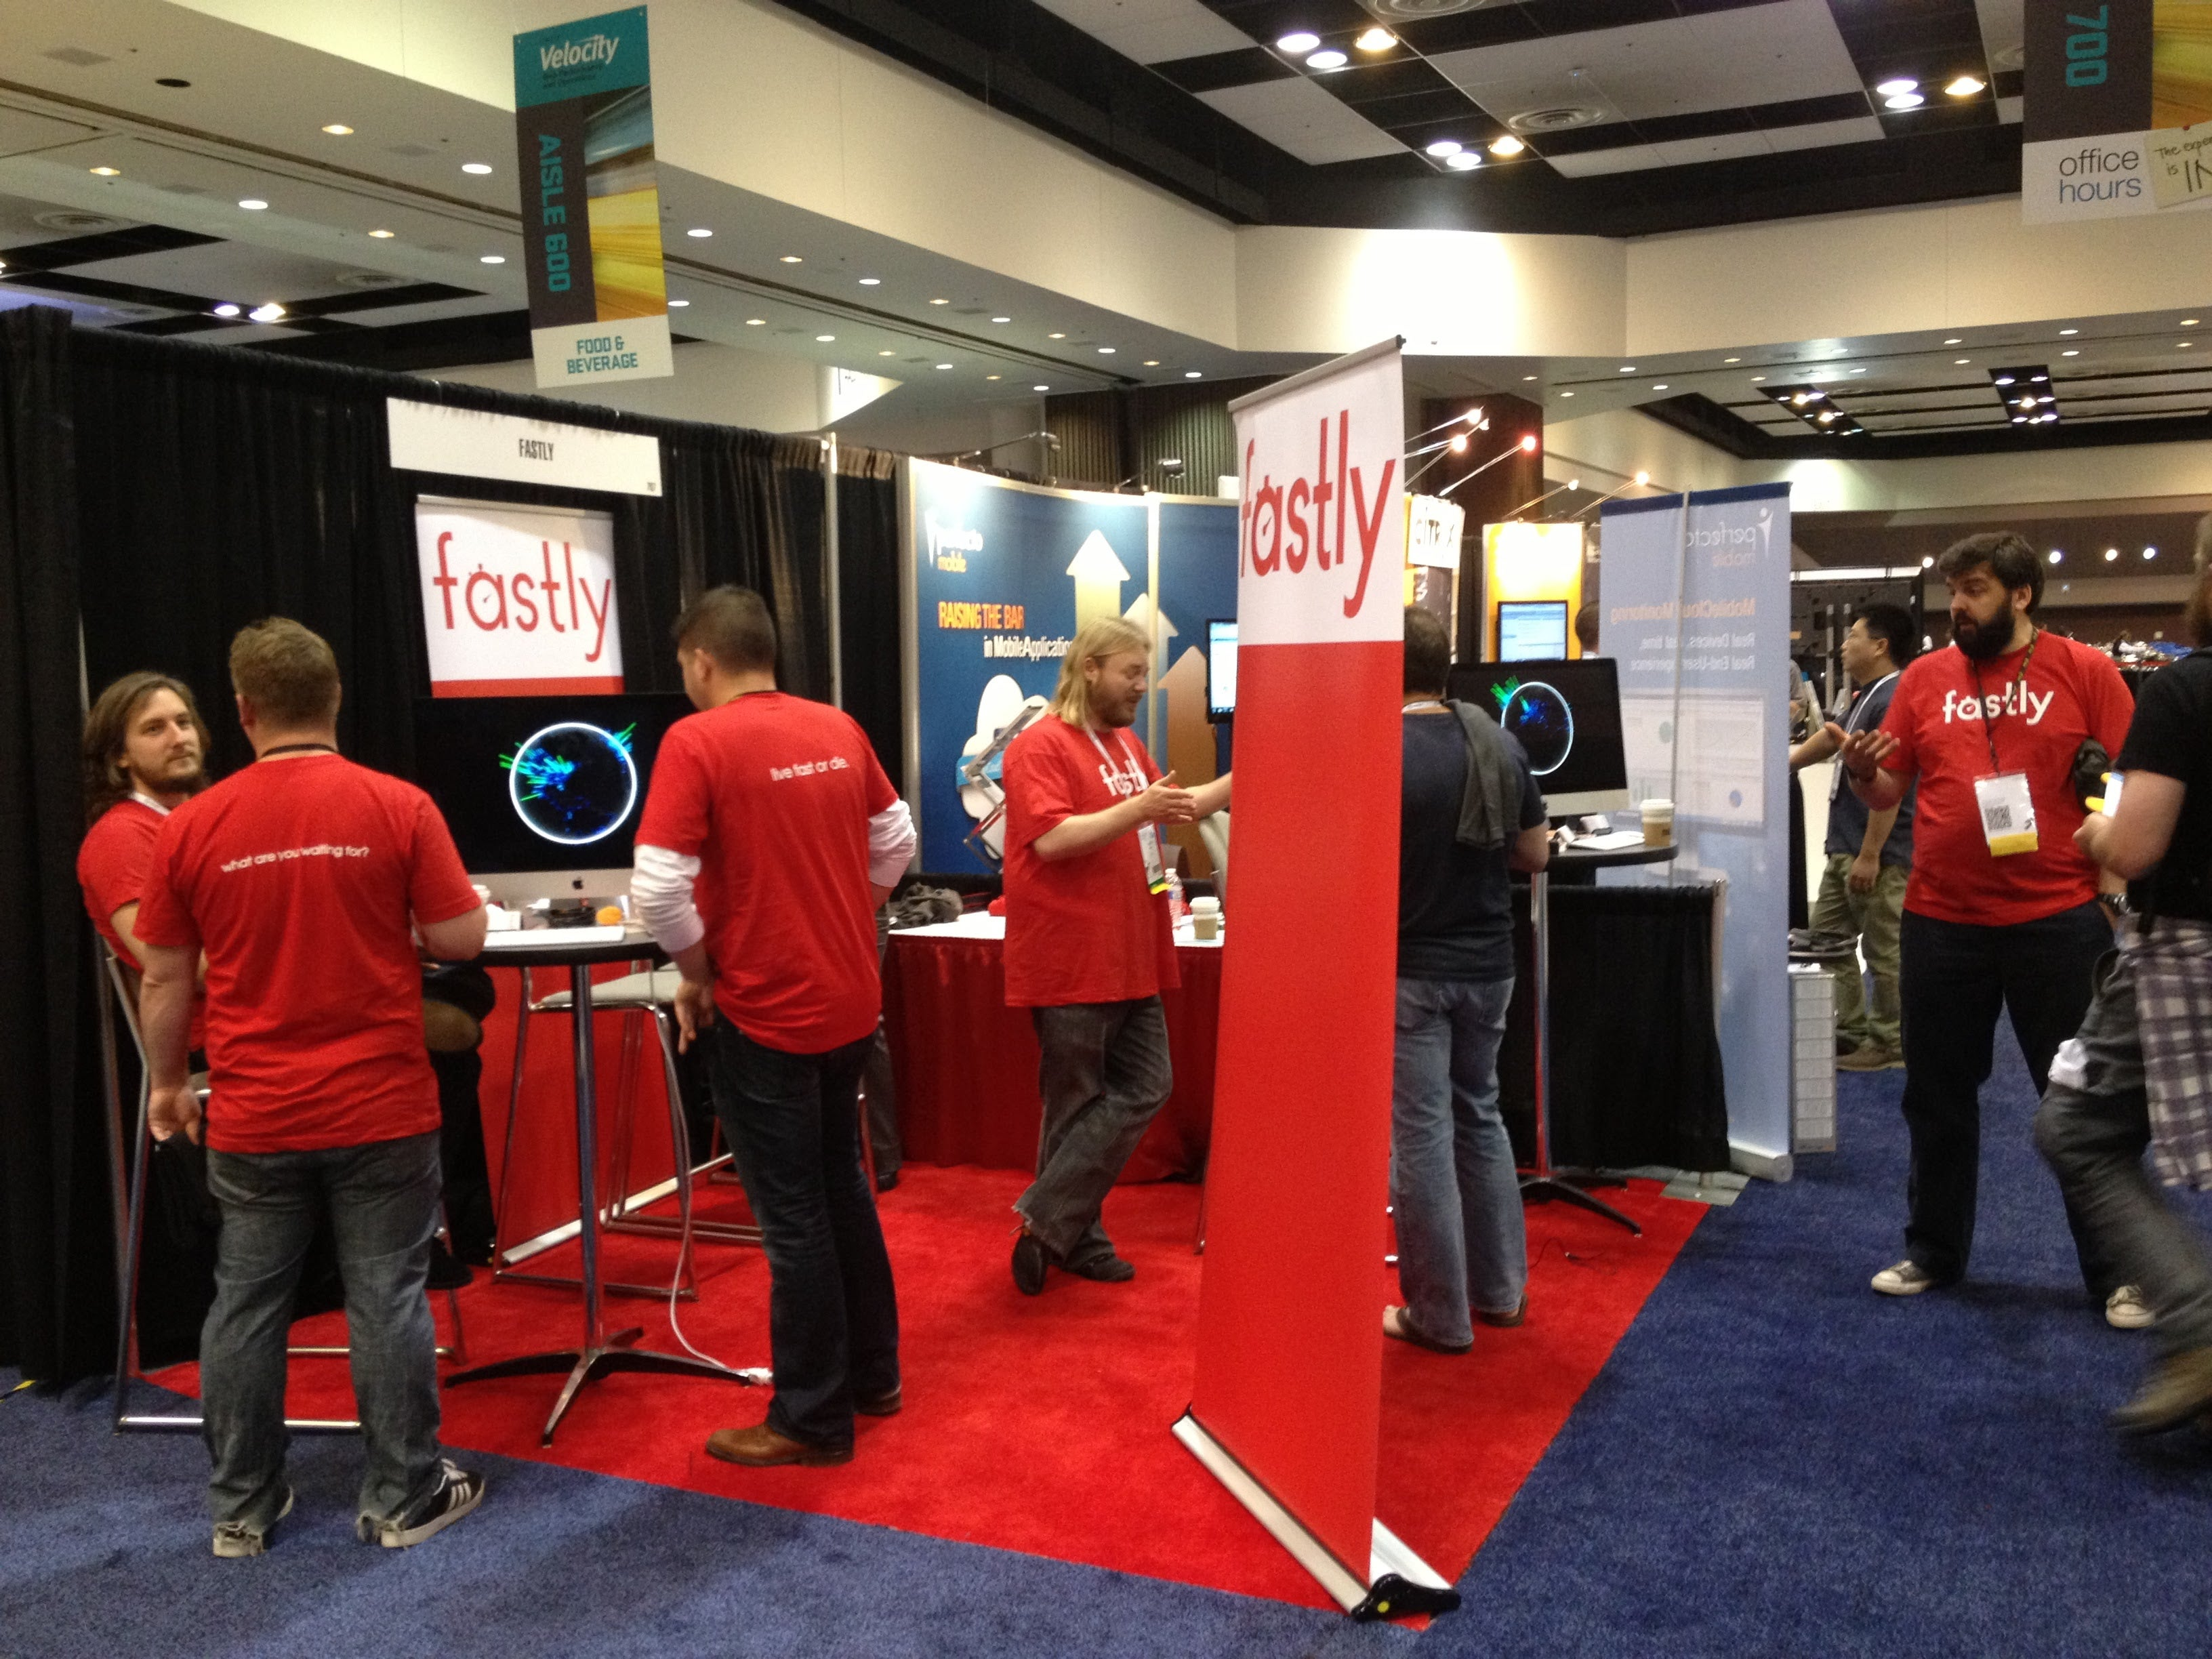 The Fastly team staffs a booth at Velocity conference.